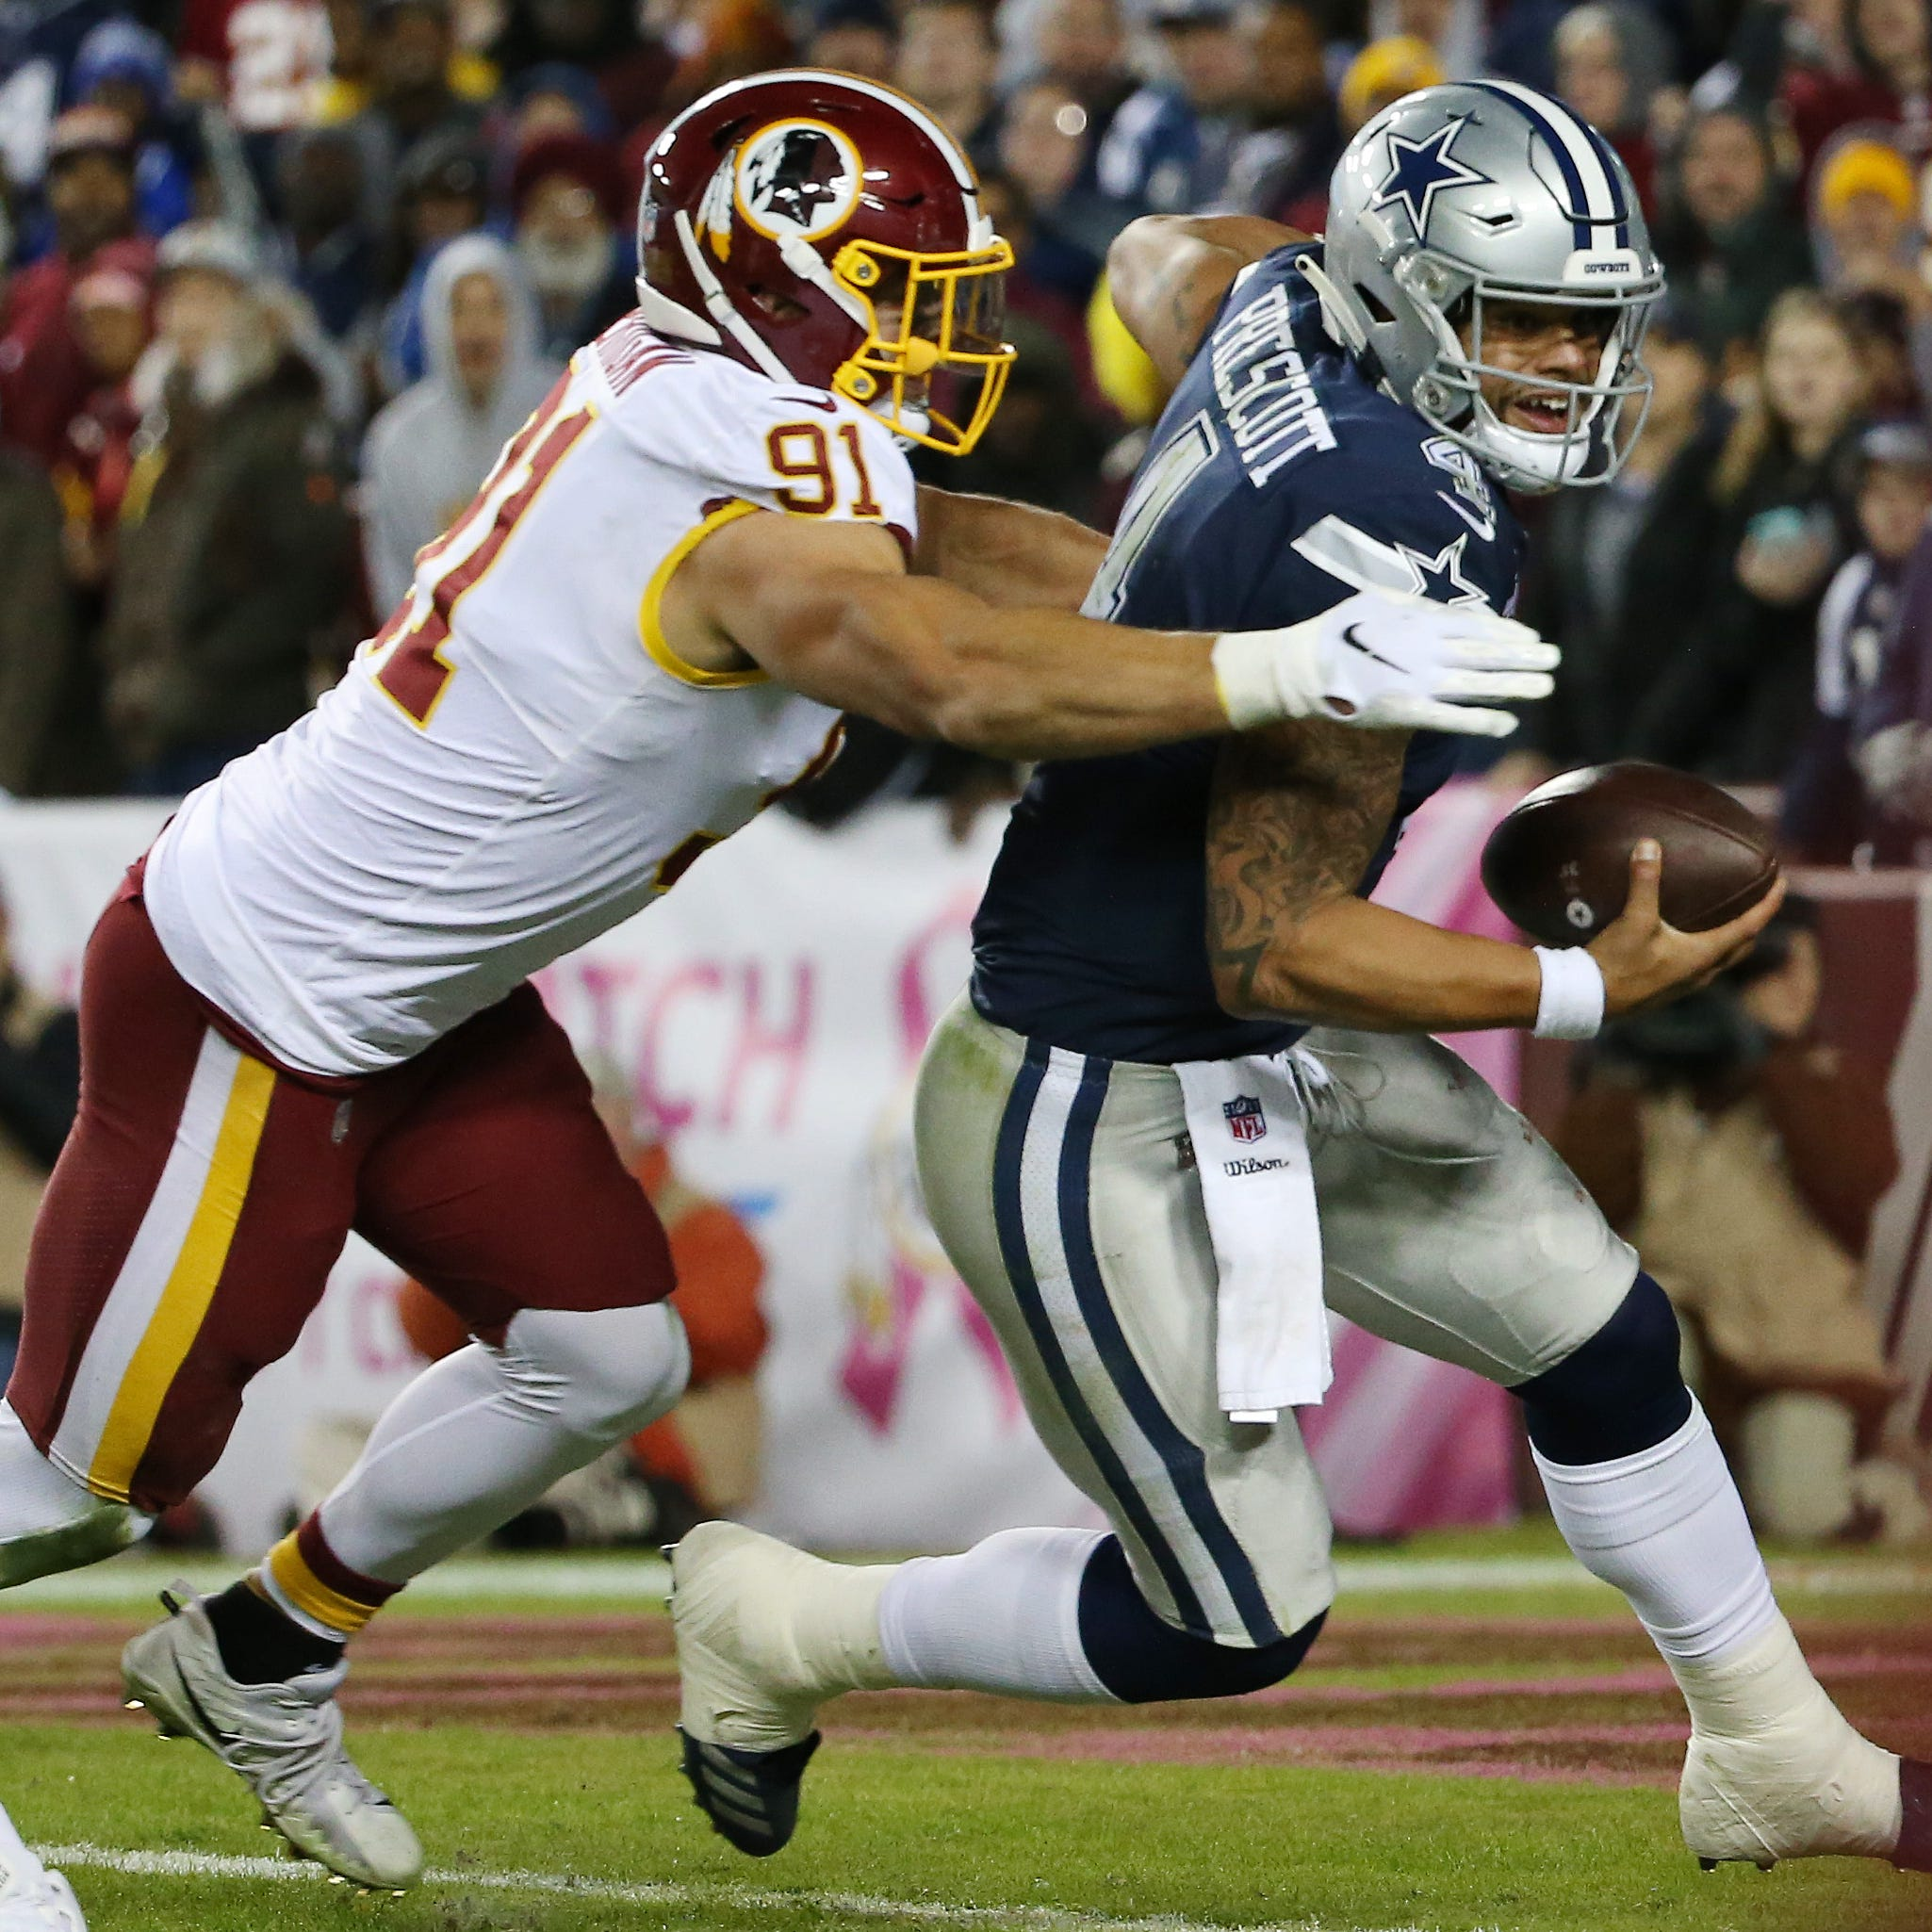 WATCH: Kerrigan has big game for Redskins with strip-sack late